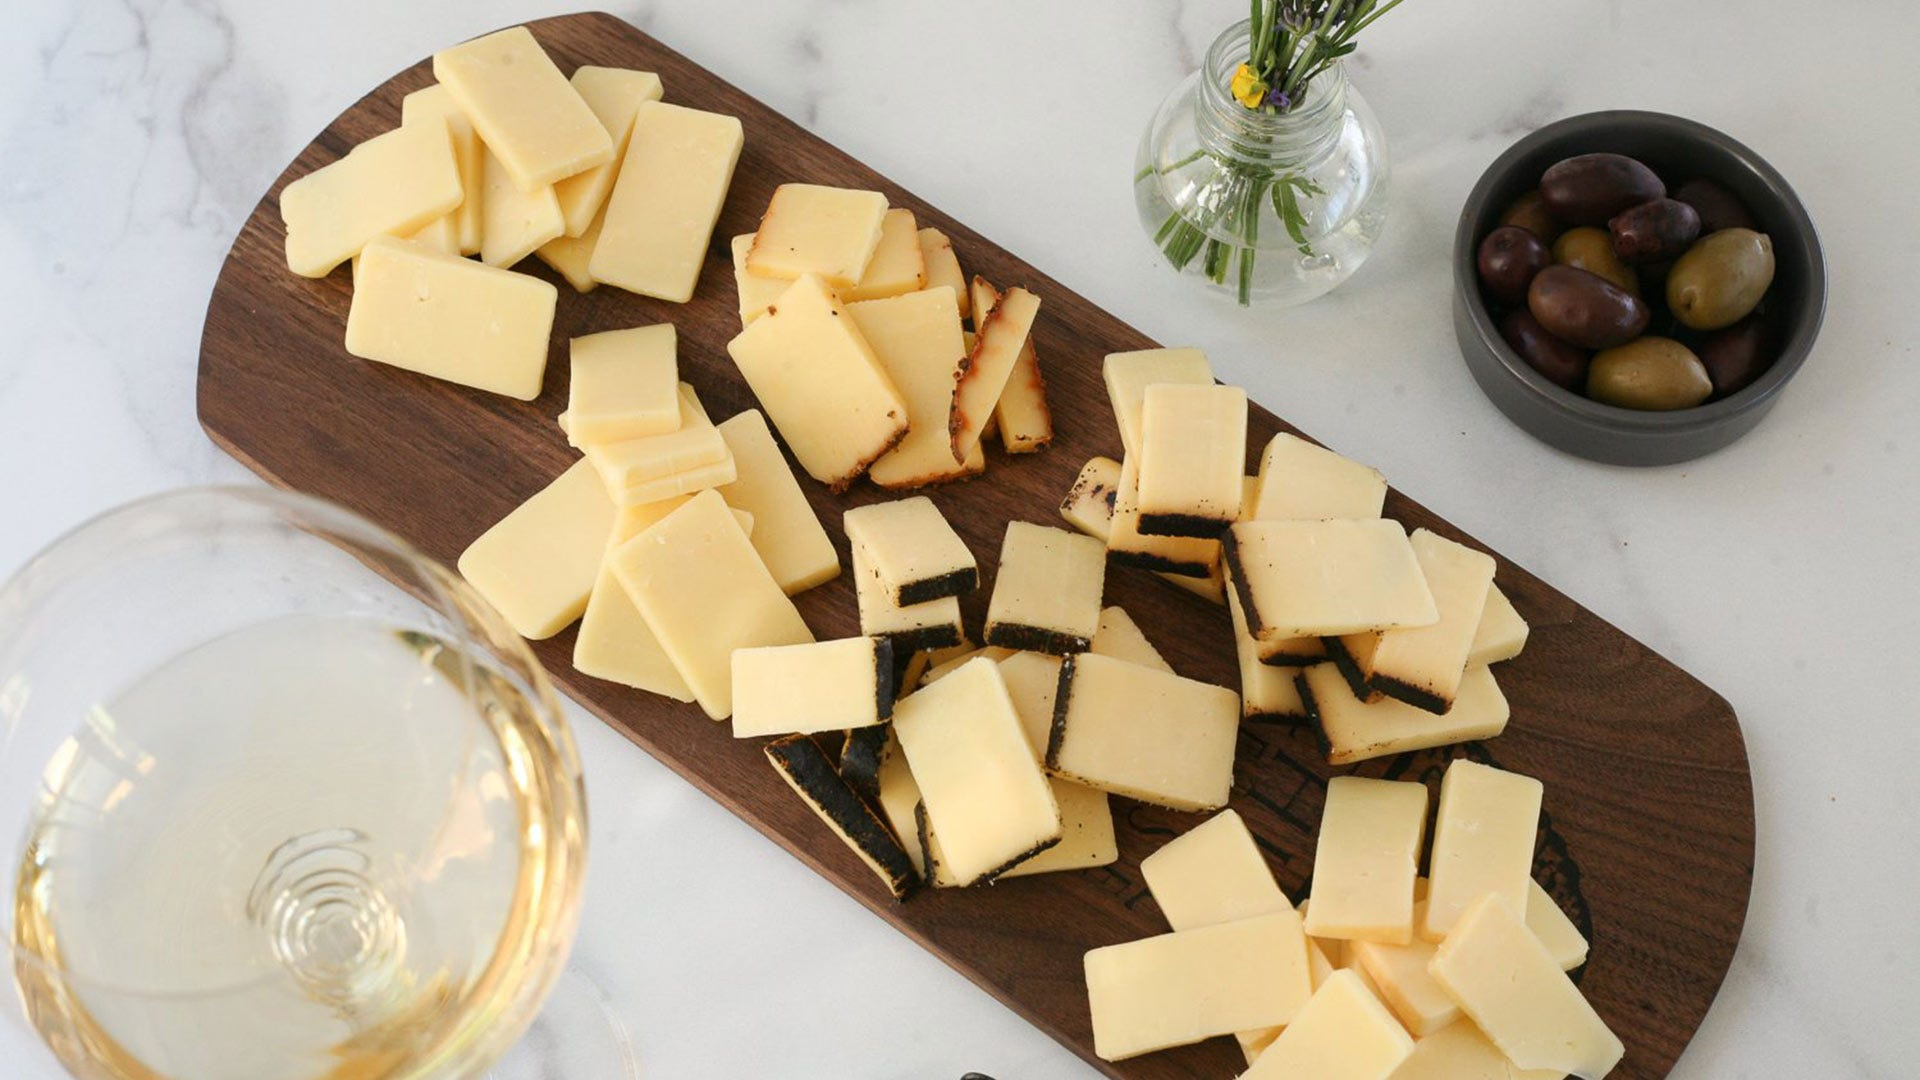 A cutting board covered with gourmet cheese.